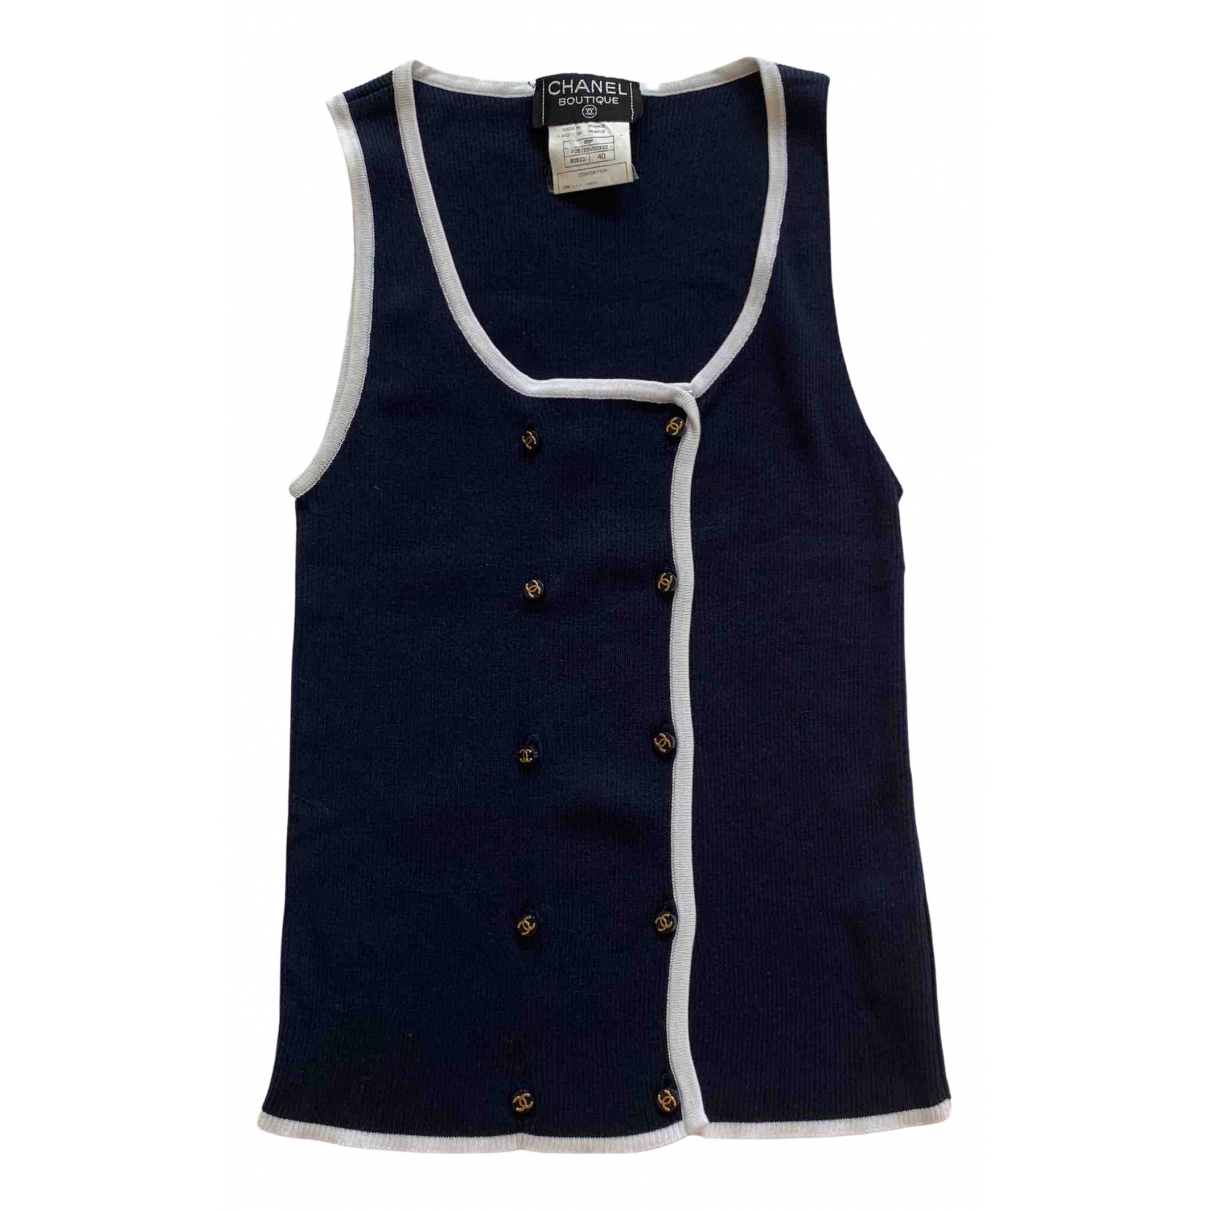 Chanel \N Navy Cotton  top for Women 40 FR